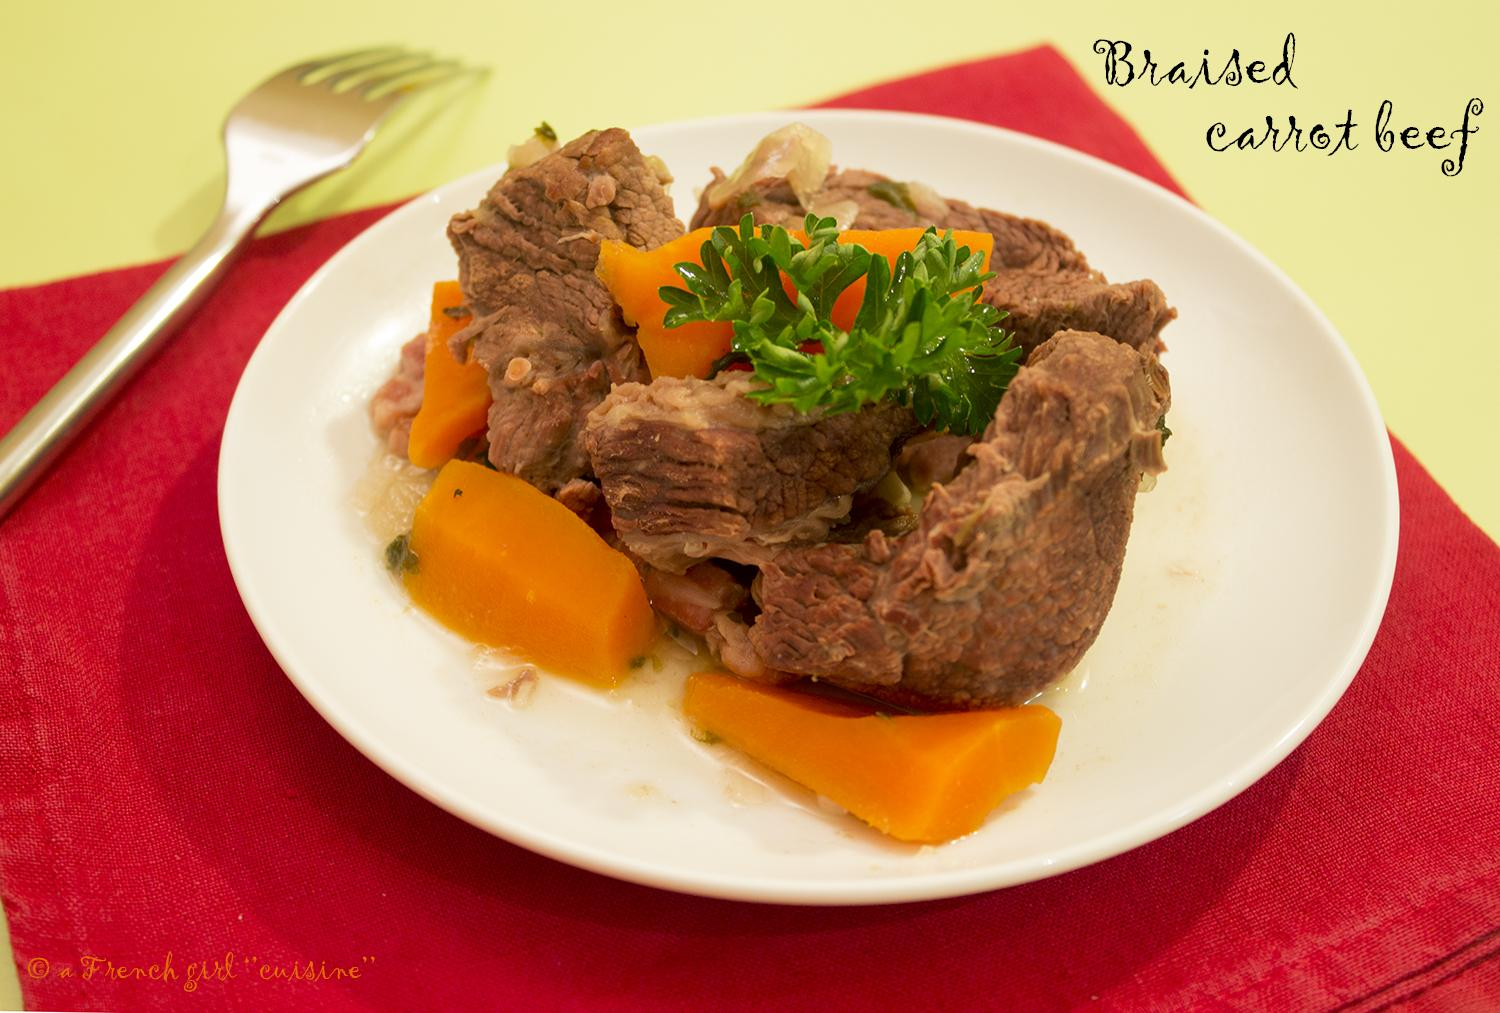 Braised beef carrot